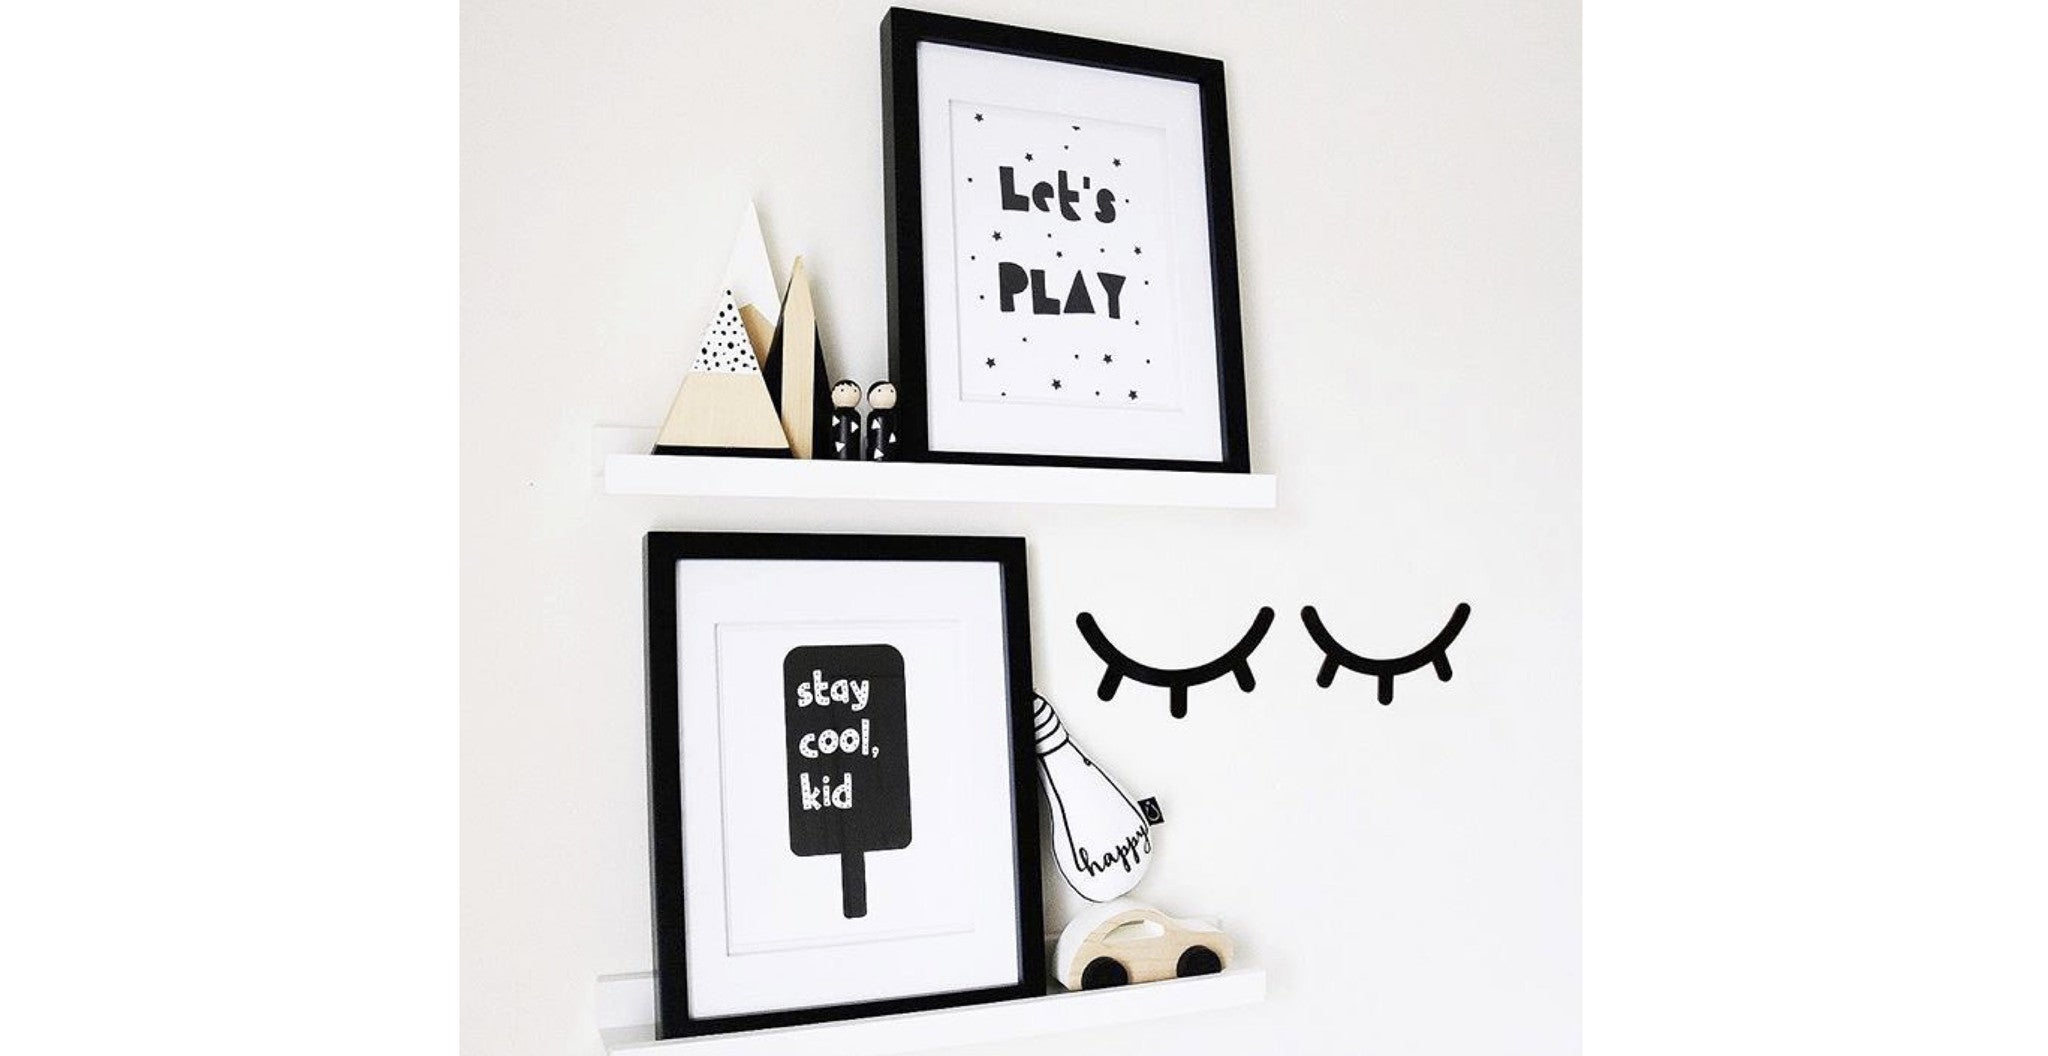 Let's Play and Stay Cool Kid monochrome nursery prints